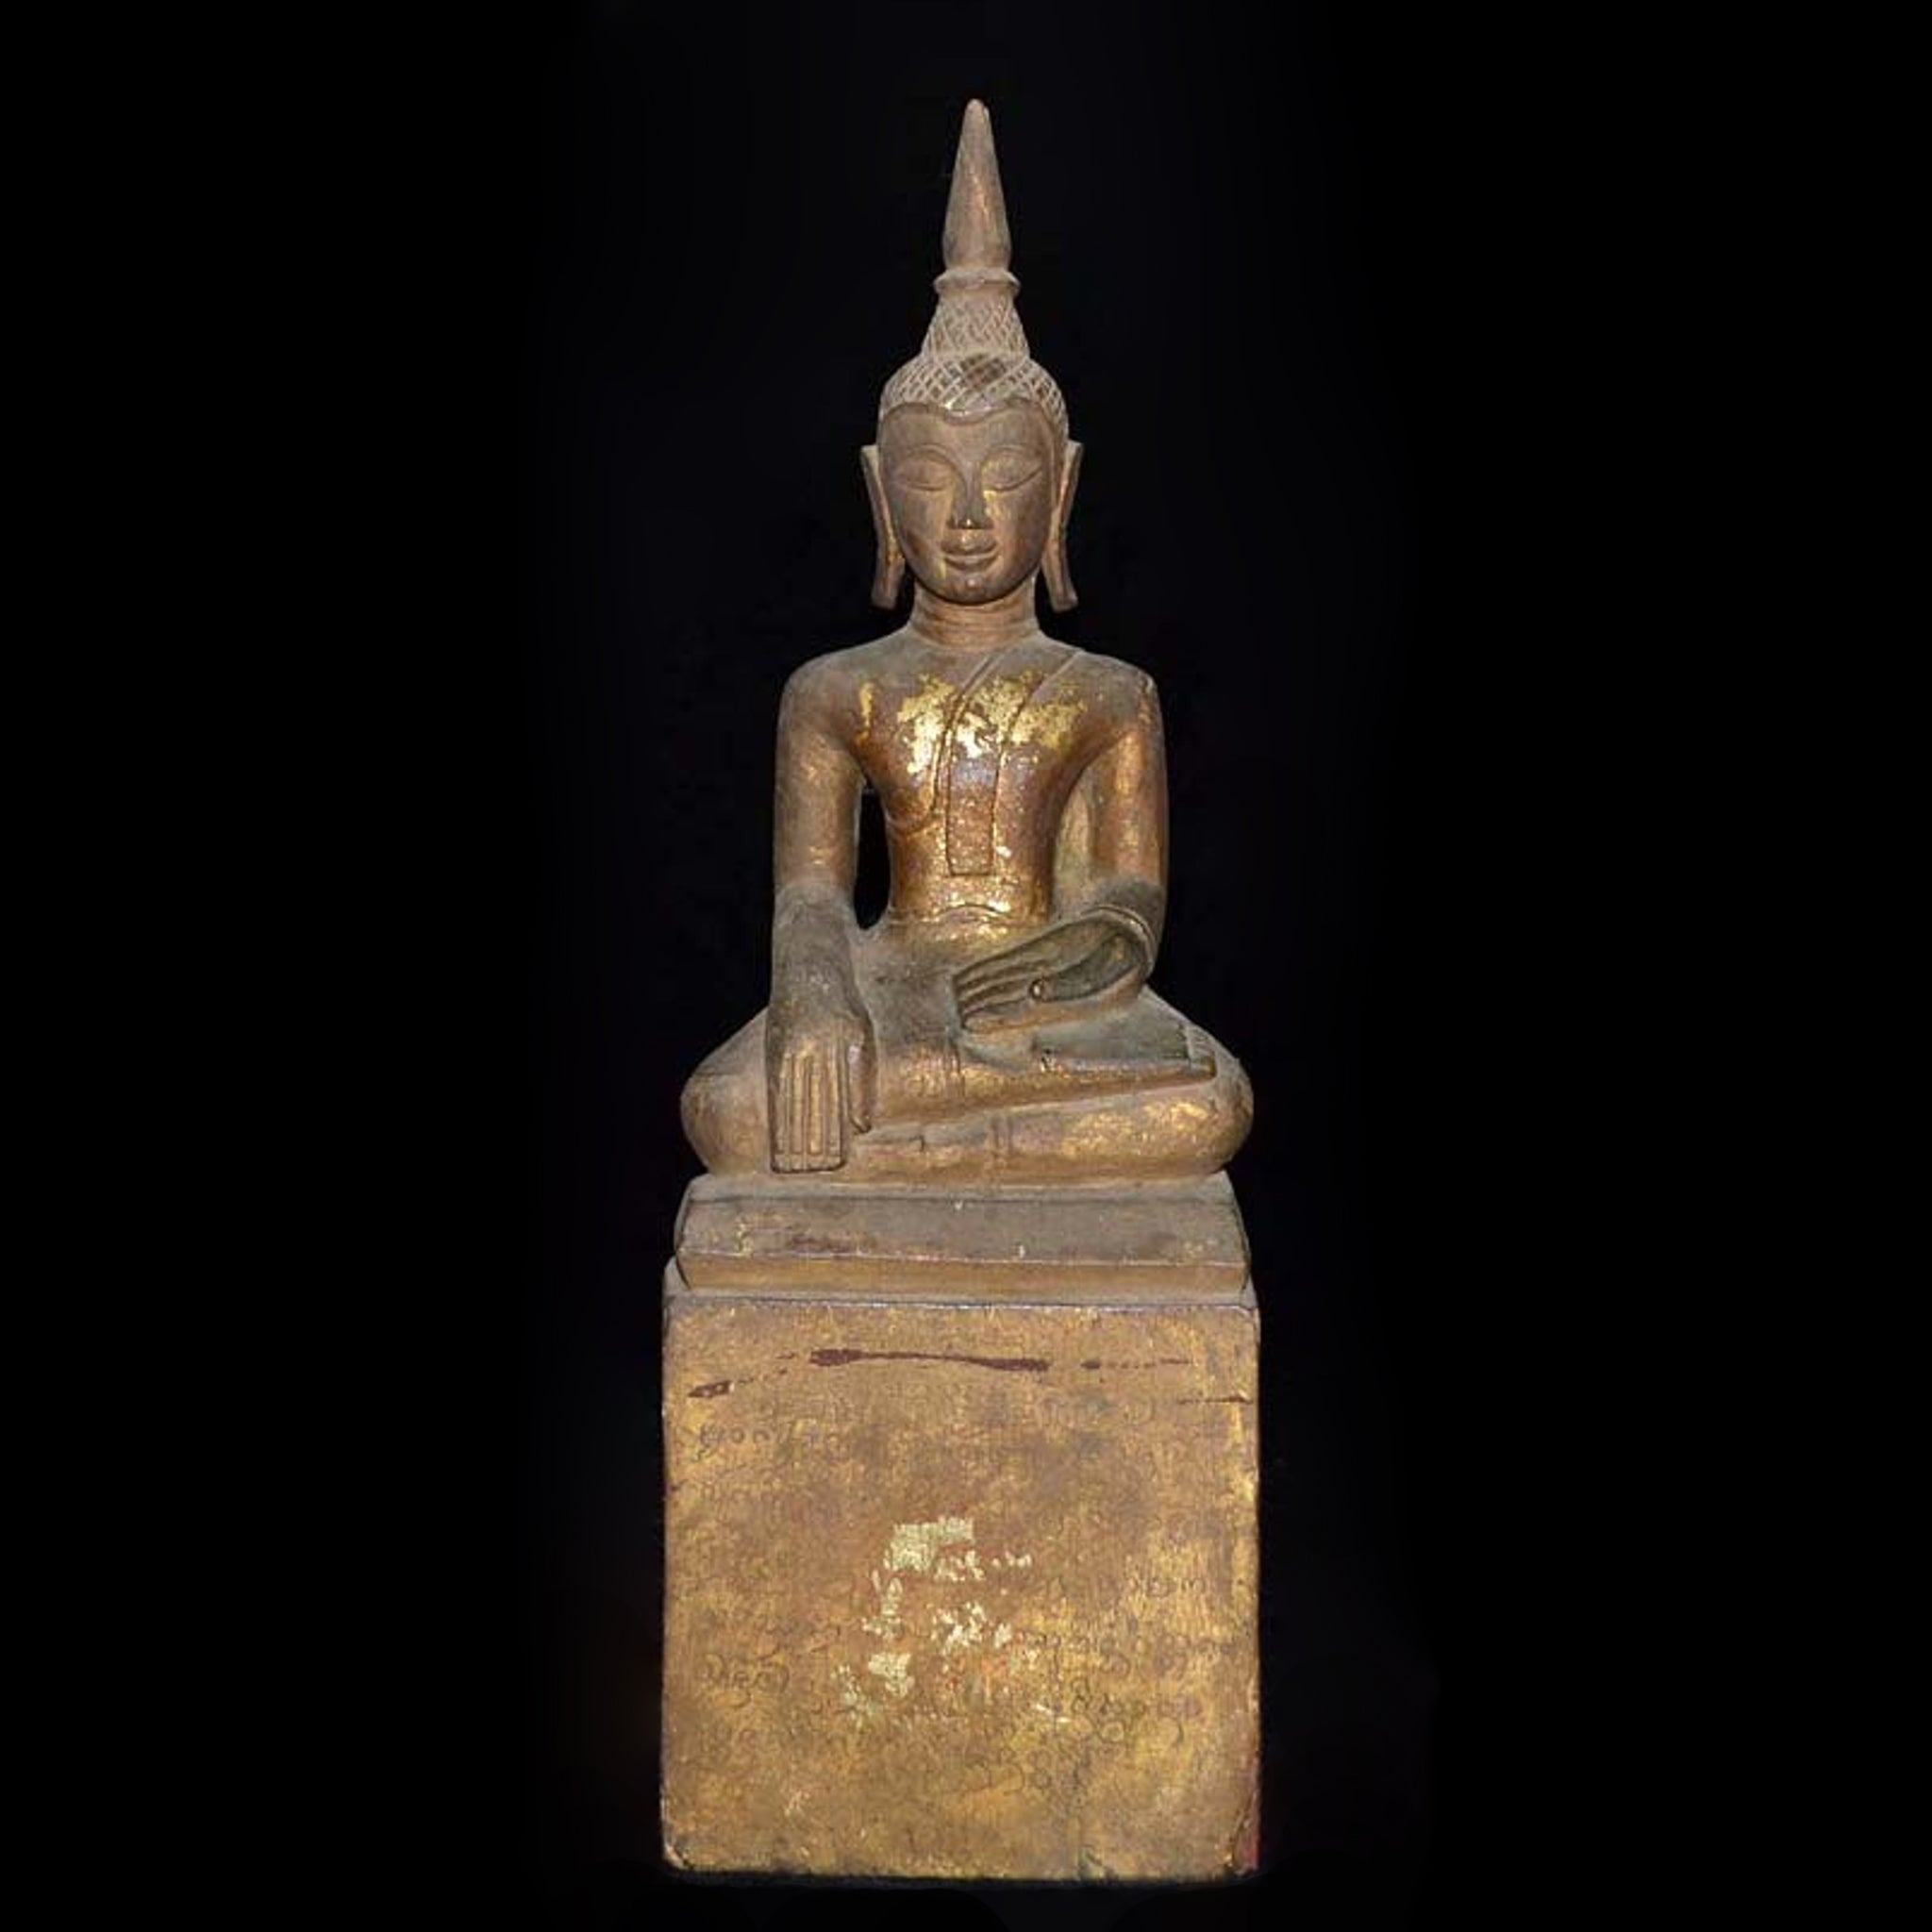 Carved Buddha Image, Thailand, Early 20th Century